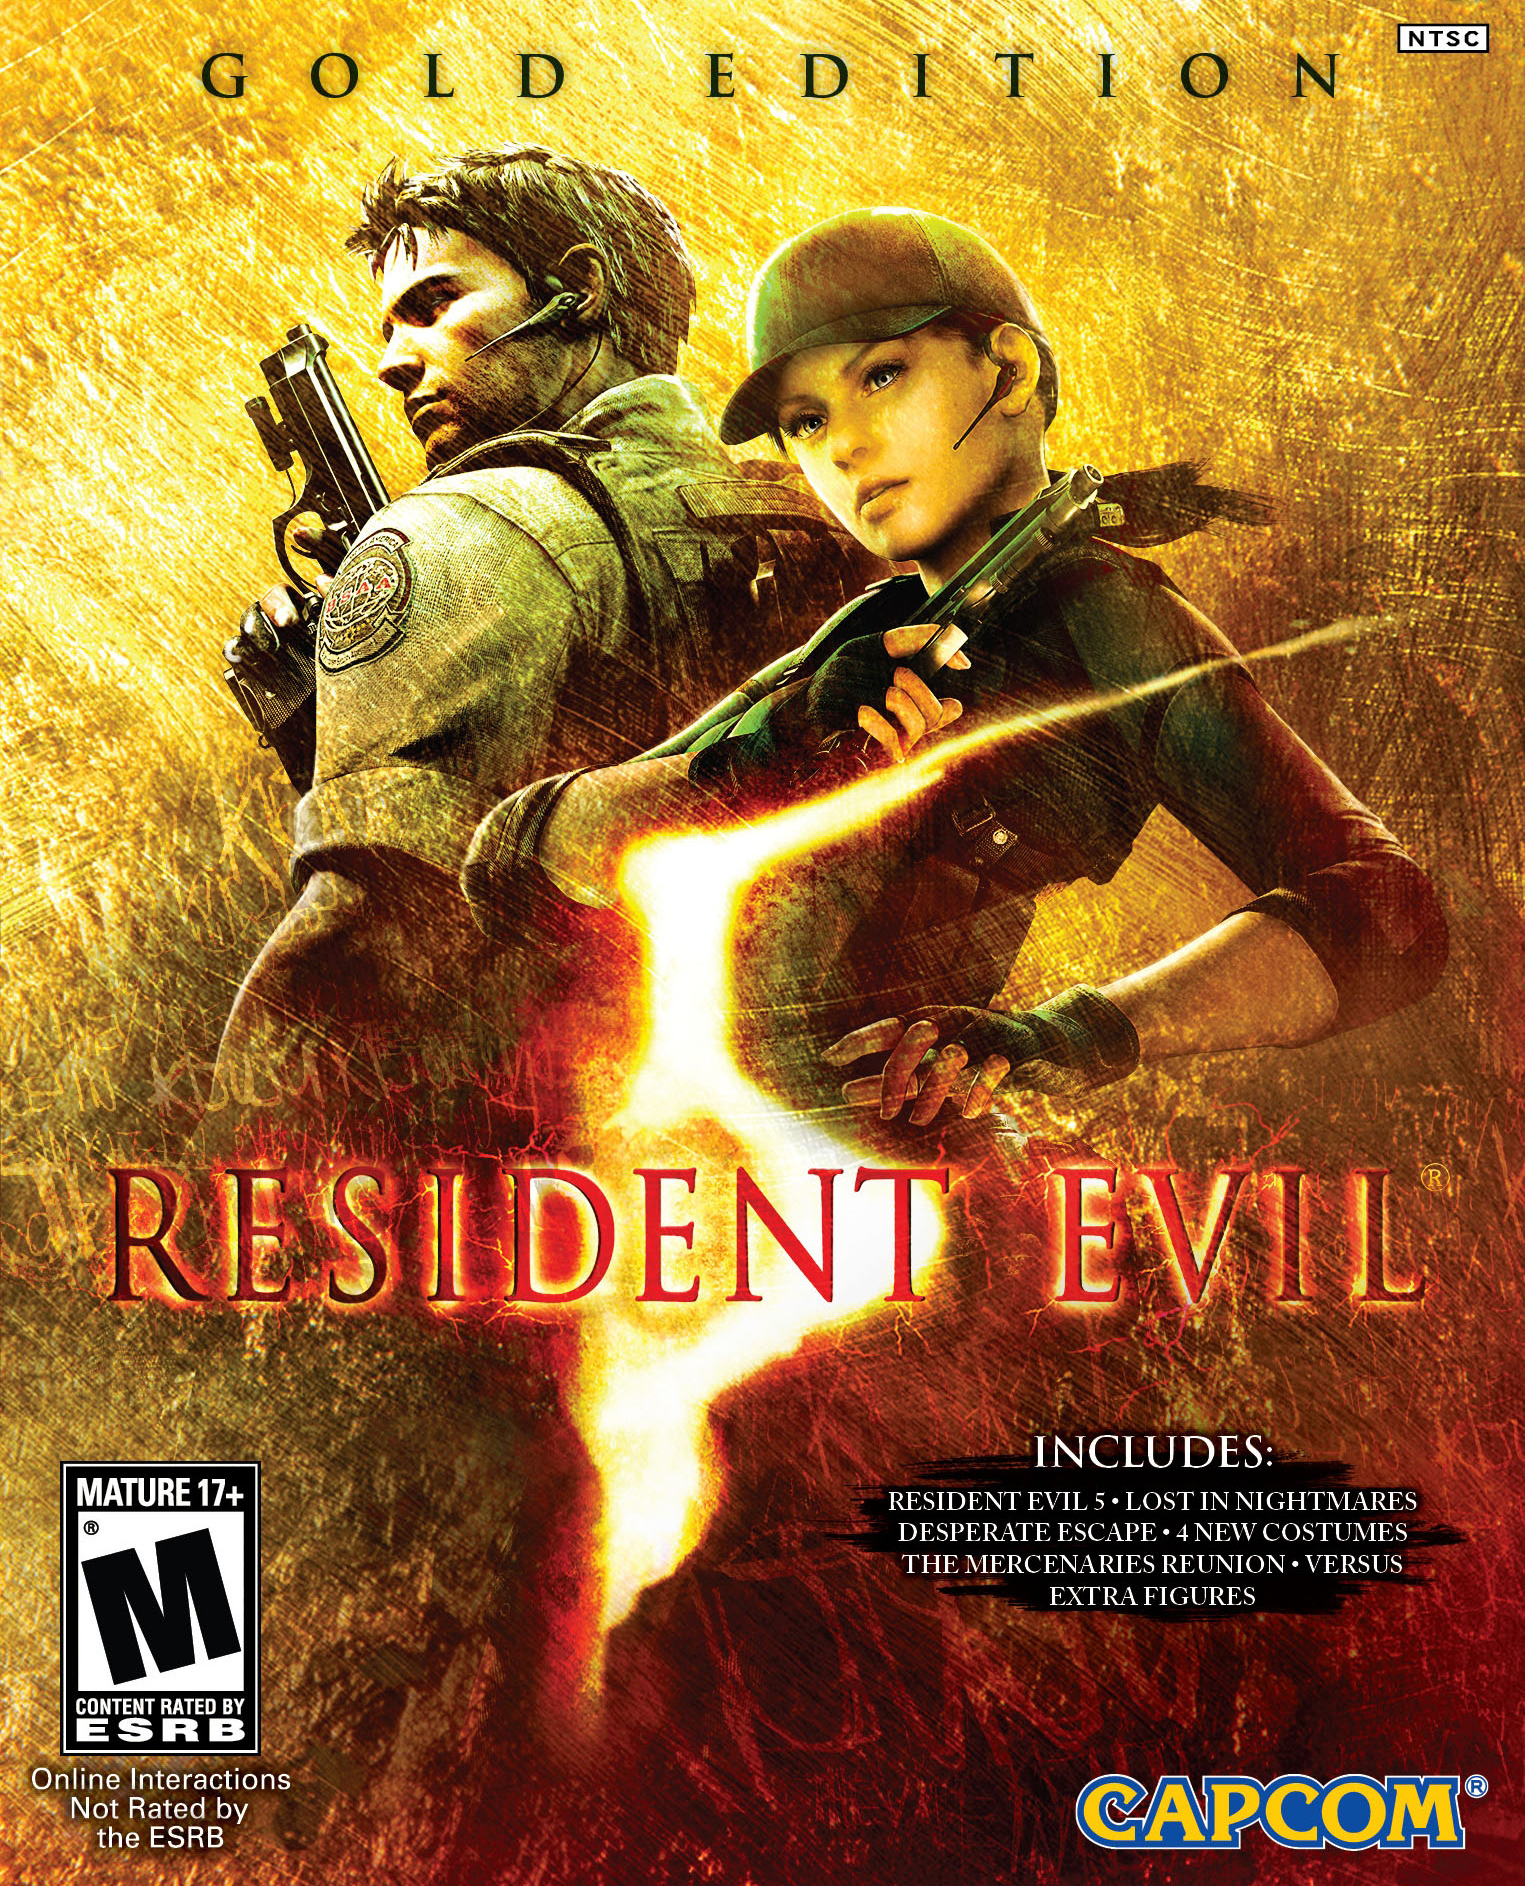 Image result for Resident Evil 5 cover pc